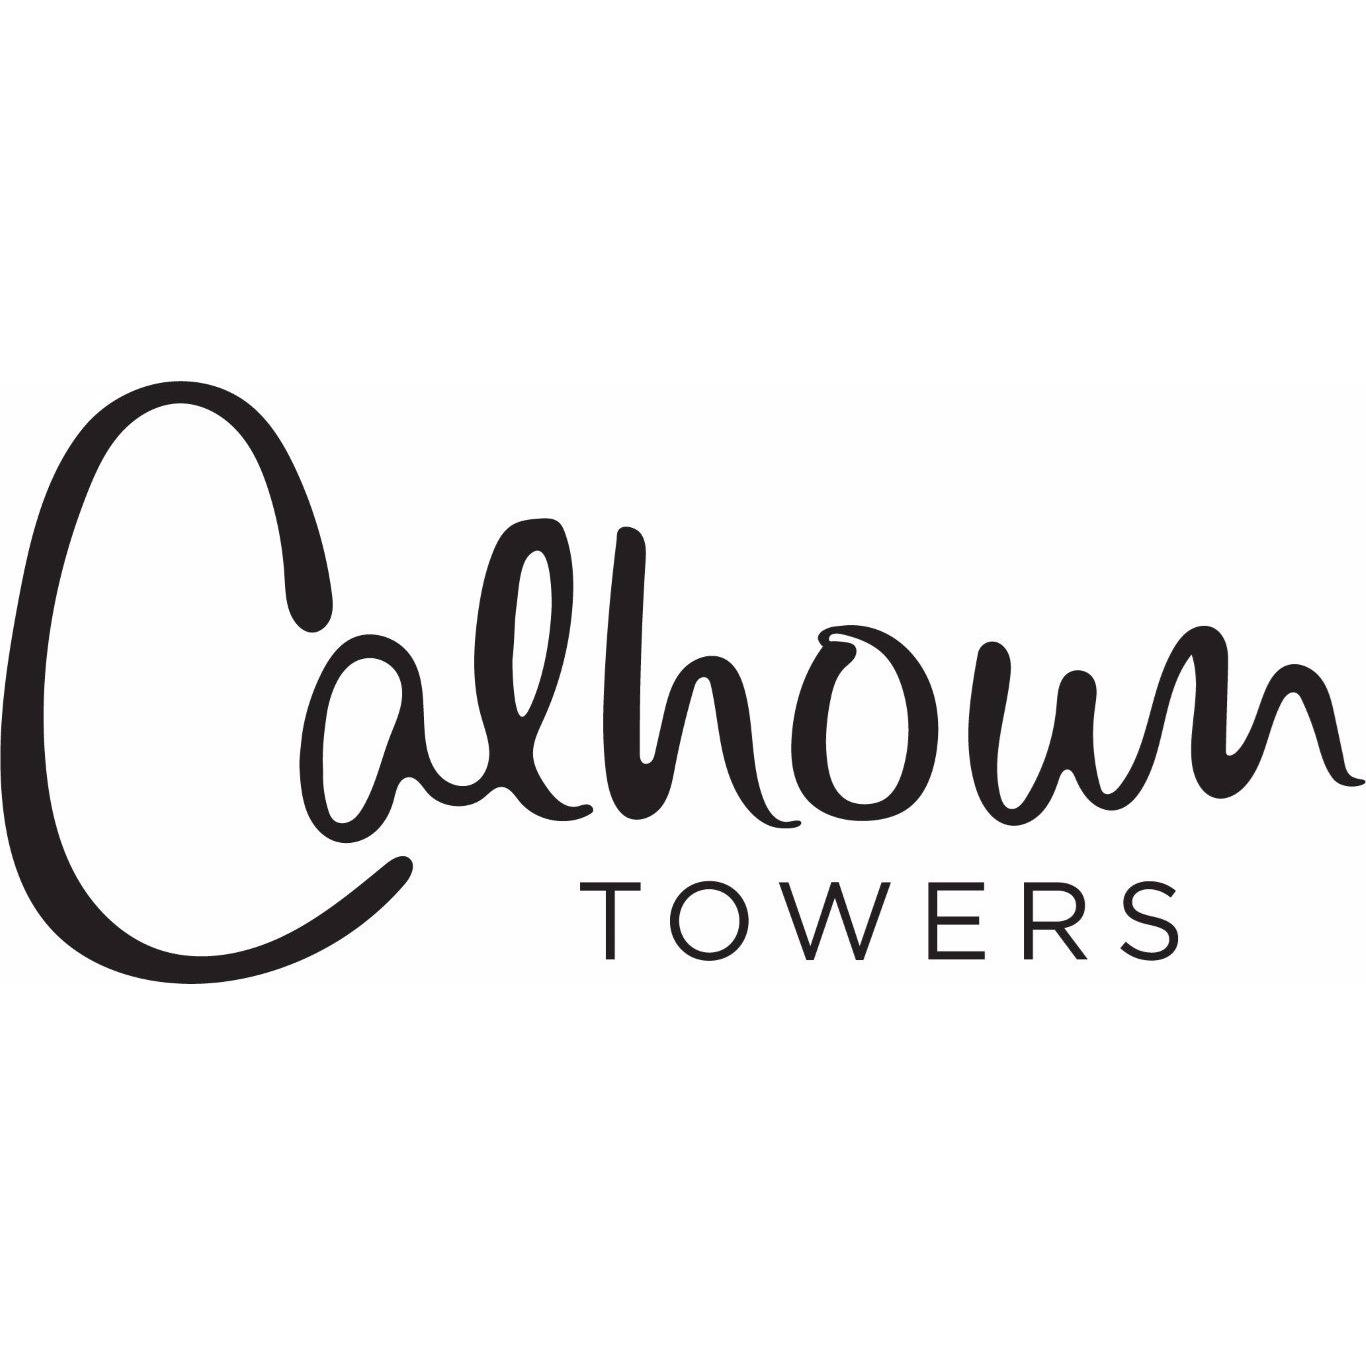 Calhoun Towers